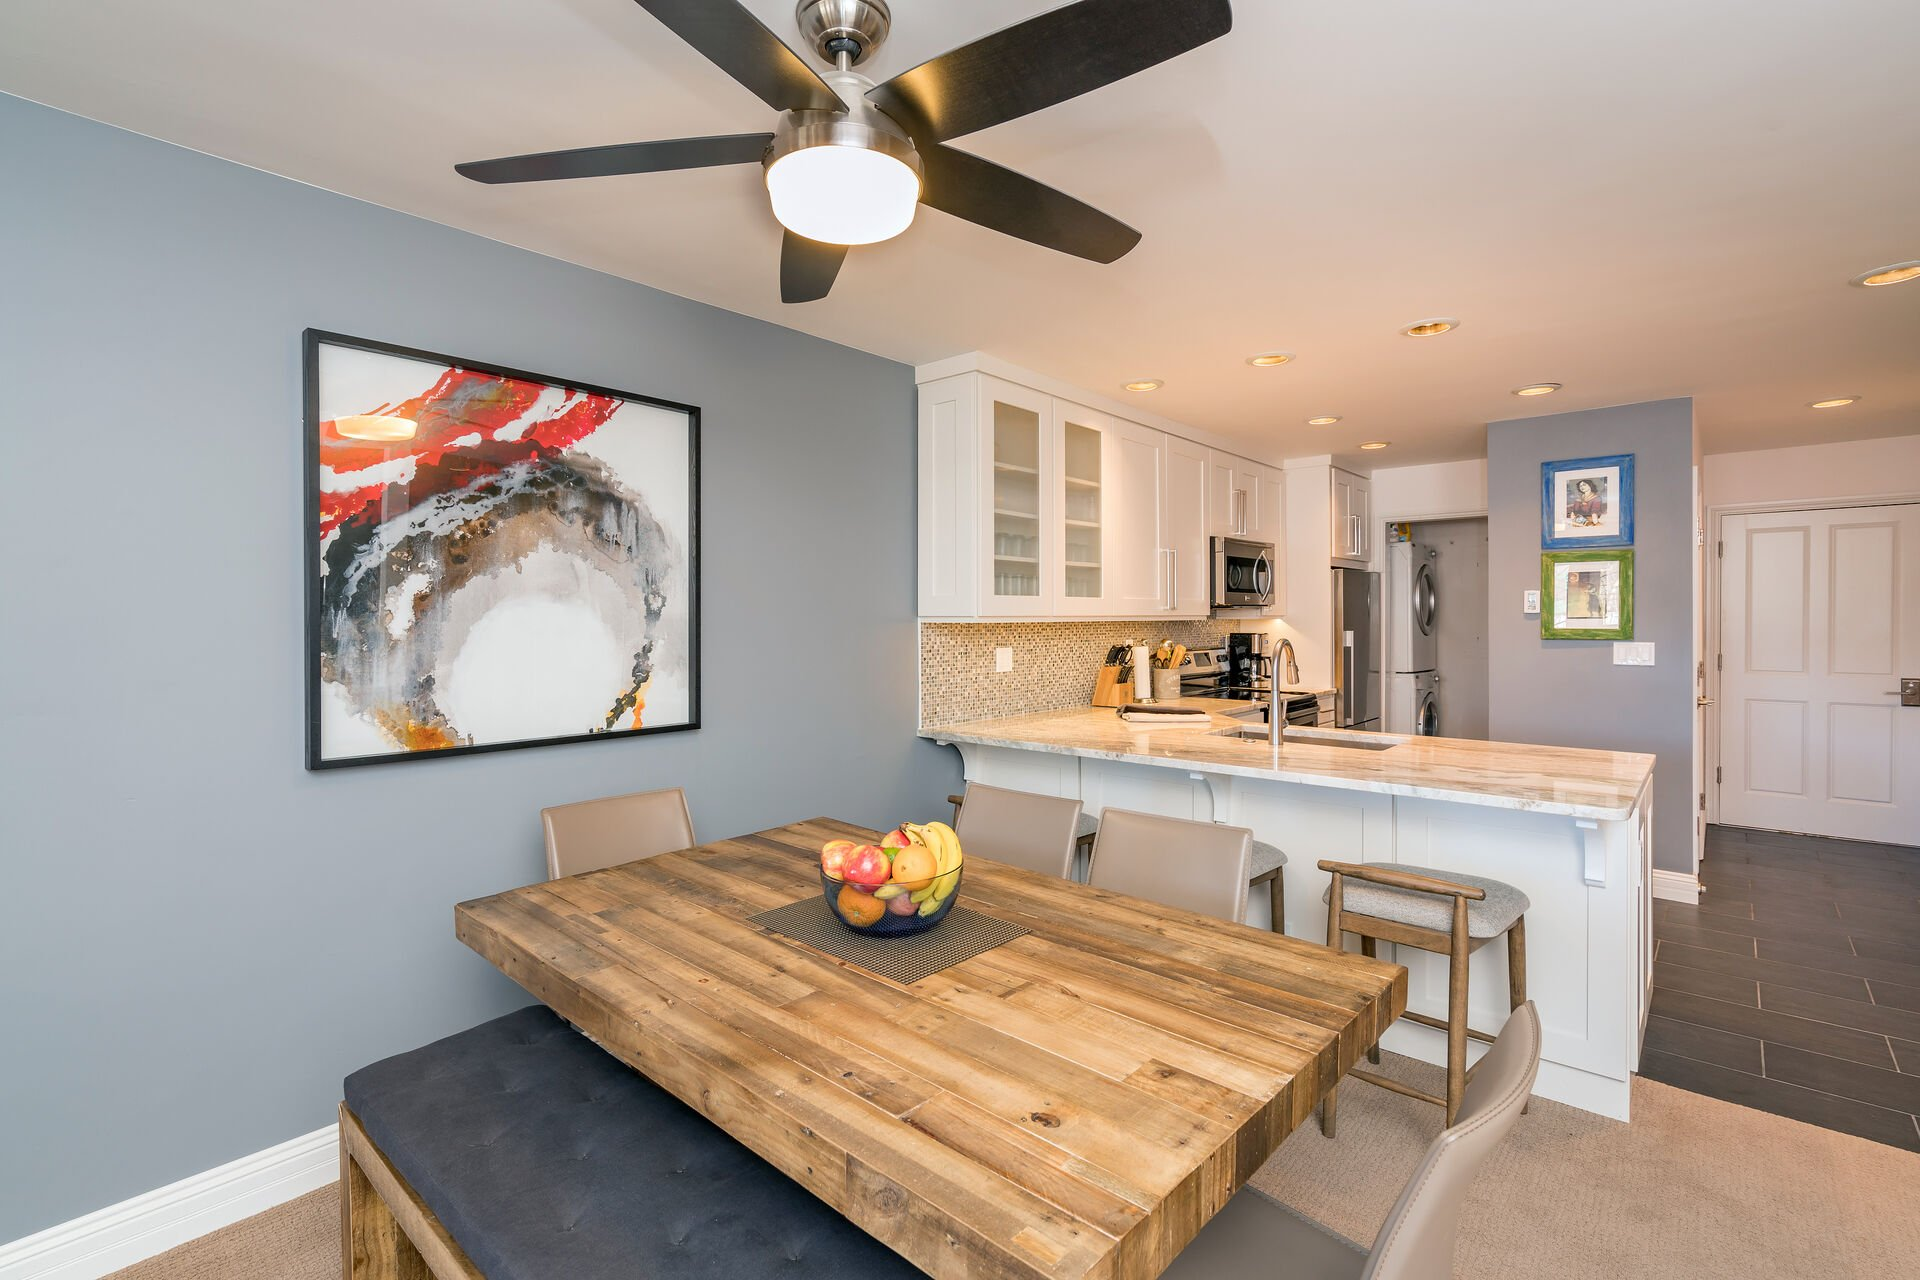 Dining Table, Chairs, Bench, Breakfast Bar, and Ceiling Fan